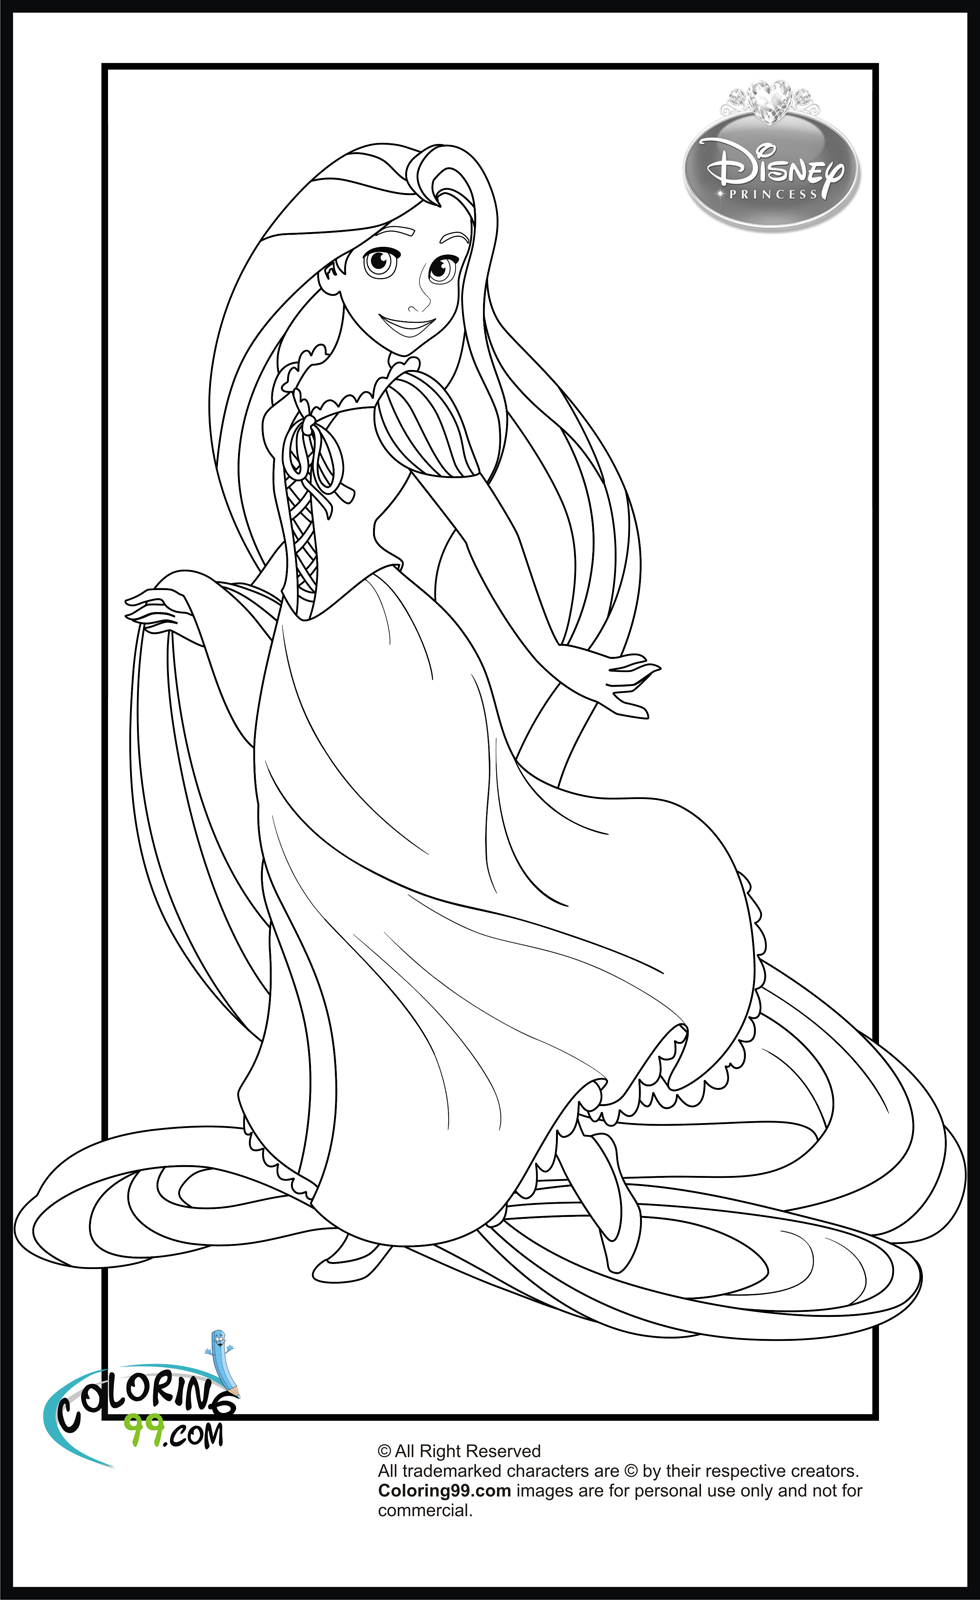 free disney coloring pages online printables disney princess coloring pages team colors pages free disney online coloring printables